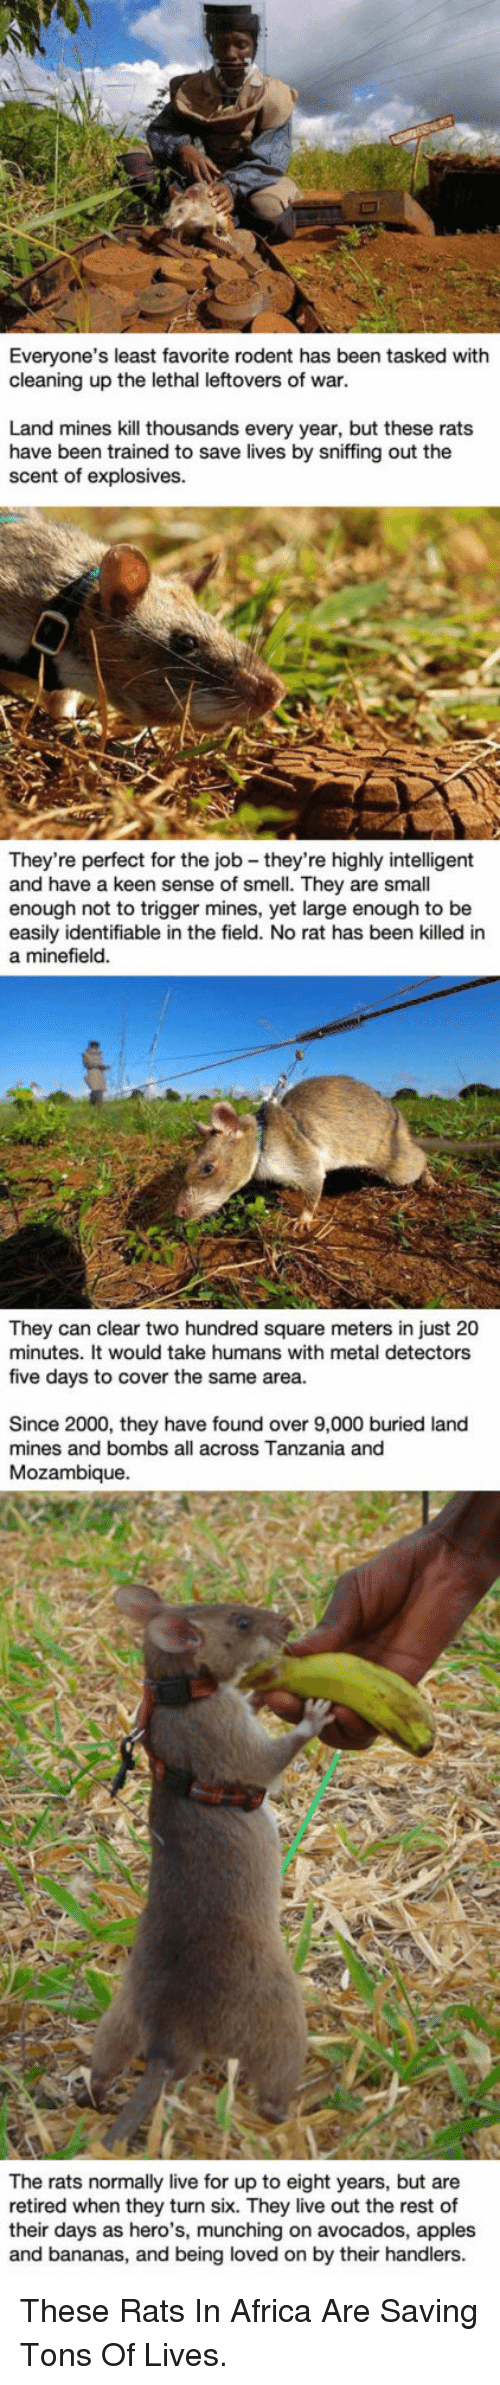 metal detectors: Everyone's least favorite rodent has been tasked with  cleaning up the lethal leftovers of war.  Land mines kill thousands every year, but these rats  have been trained to save lives by sniffing out the  scent of explosives.  They're perfect for the job - they're highly intelligent  and have a keen sense of smell. They are small  enough not to trigger mines, yet large enough to be  easily identifiable in the field. No rat has been killed in  a minefield  They can clear two hundred square meters in just 20  minutes. It would take humans with metal detectors  five days to cover the same area.  Since 2000, they have found over 9,000 buried land  mines and bombs all across Tanzania and  Mozambique.  their days an they turn six n to eight  and bananas, and being loved on by their handlers  The rats normally live for up to eight years, but are  retired when they turn six. They live out the rest of  their days as hero's, munching on avocados, apples  retired when hero',mon by their  rest of <p>These Rats In Africa Are Saving Tons Of Lives.</p>